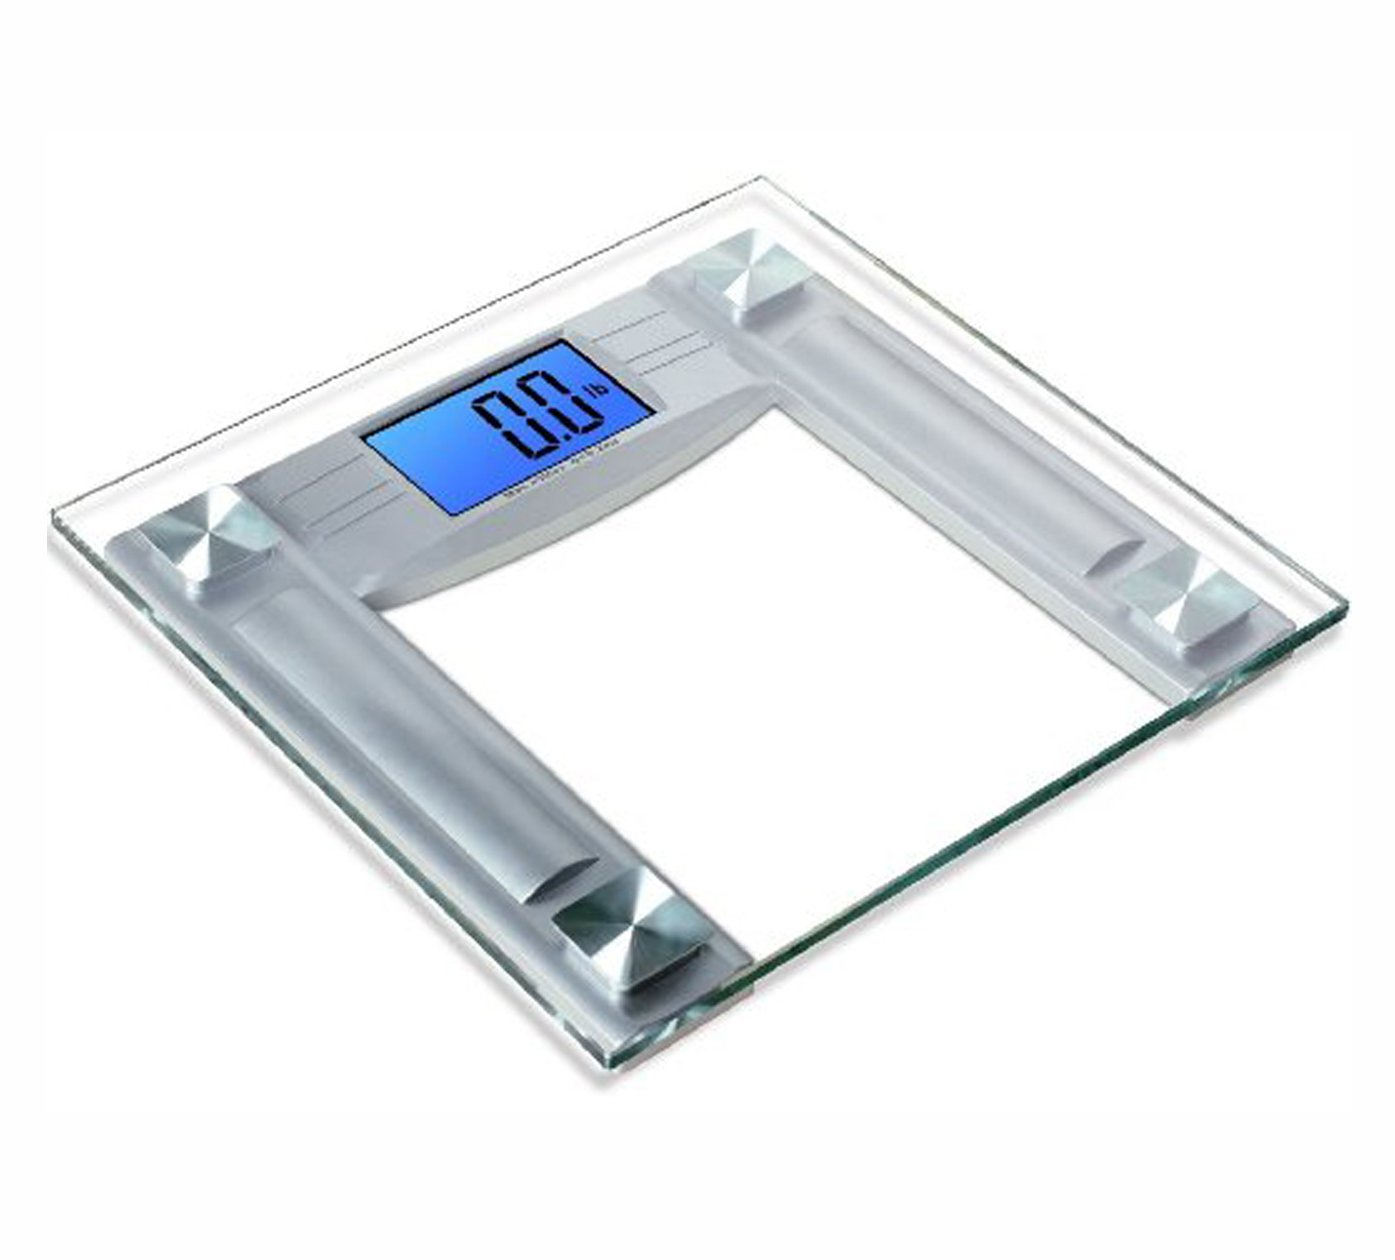 Amazon scale bathroom - Amazon Com Mosiso High Accuracy Digital Bathroom Scale With 4 3 Blue Backlight Display And Smart Step On Technology Newest Version Silver Health